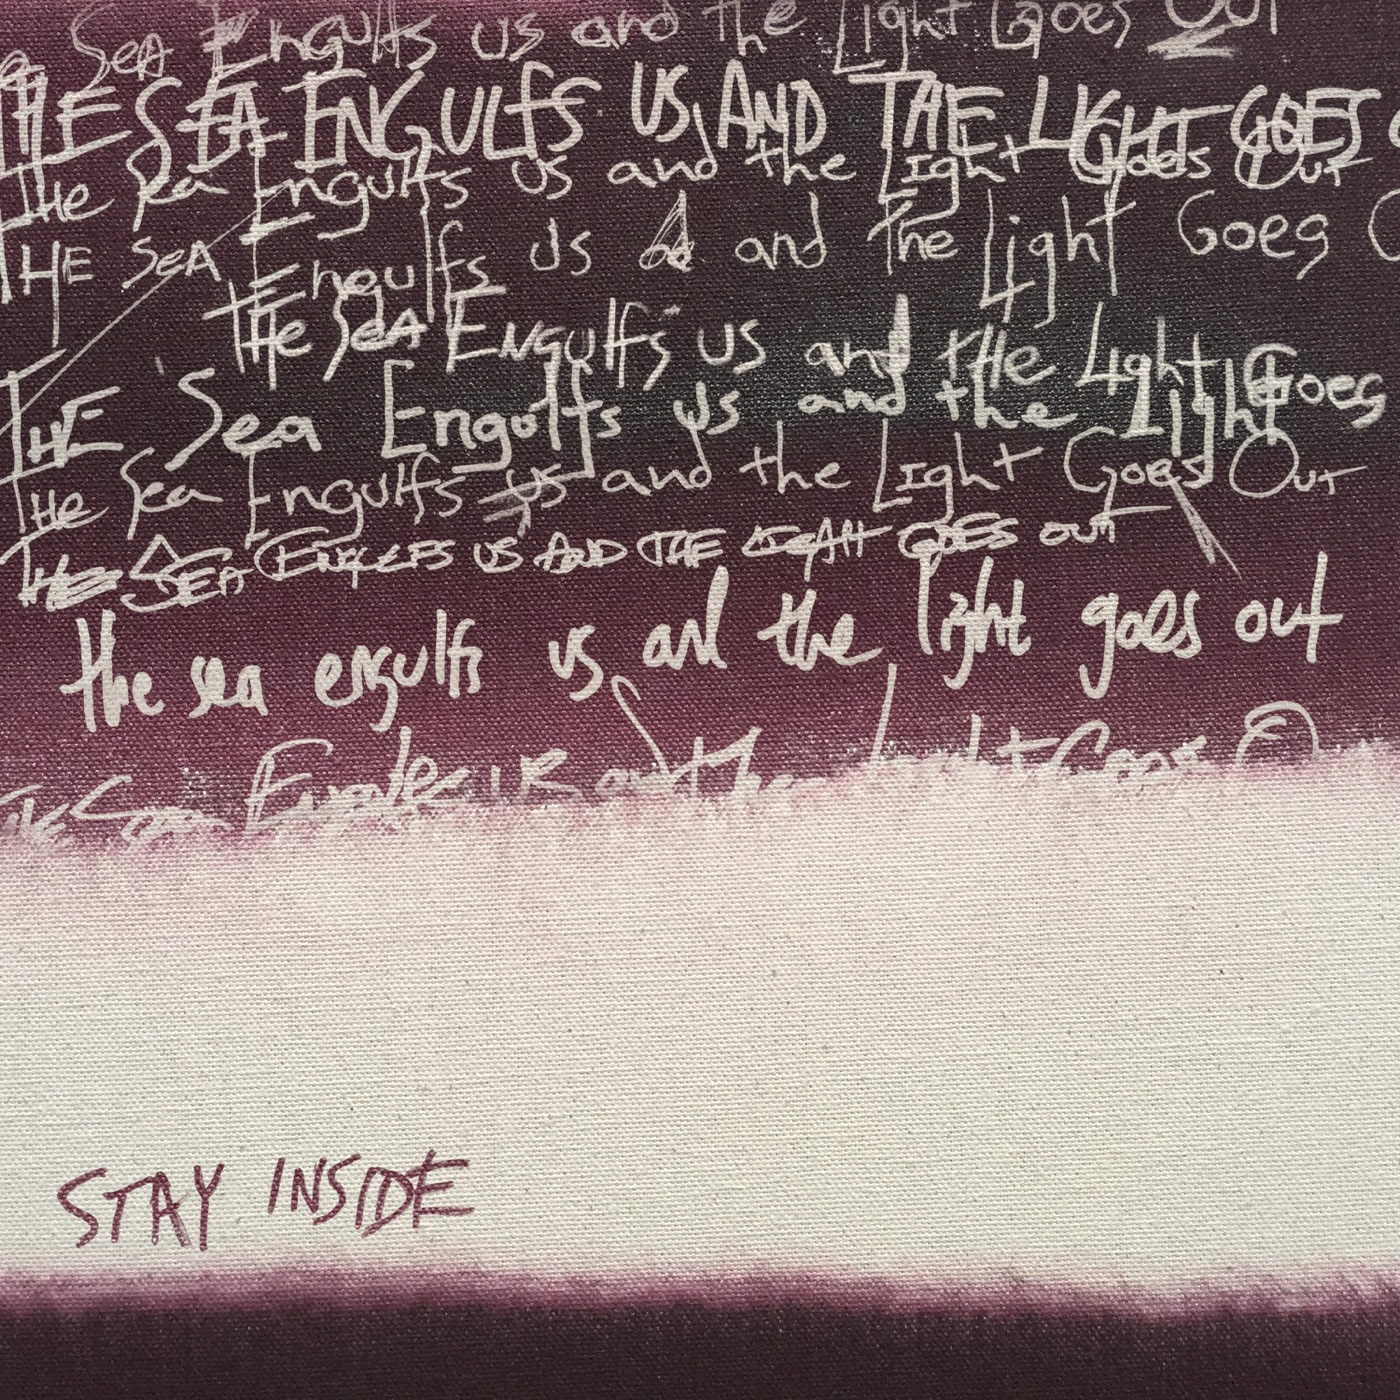 Stay Inside – The Sea Engulfs Us and the Light Goes Out [EP] (2018)